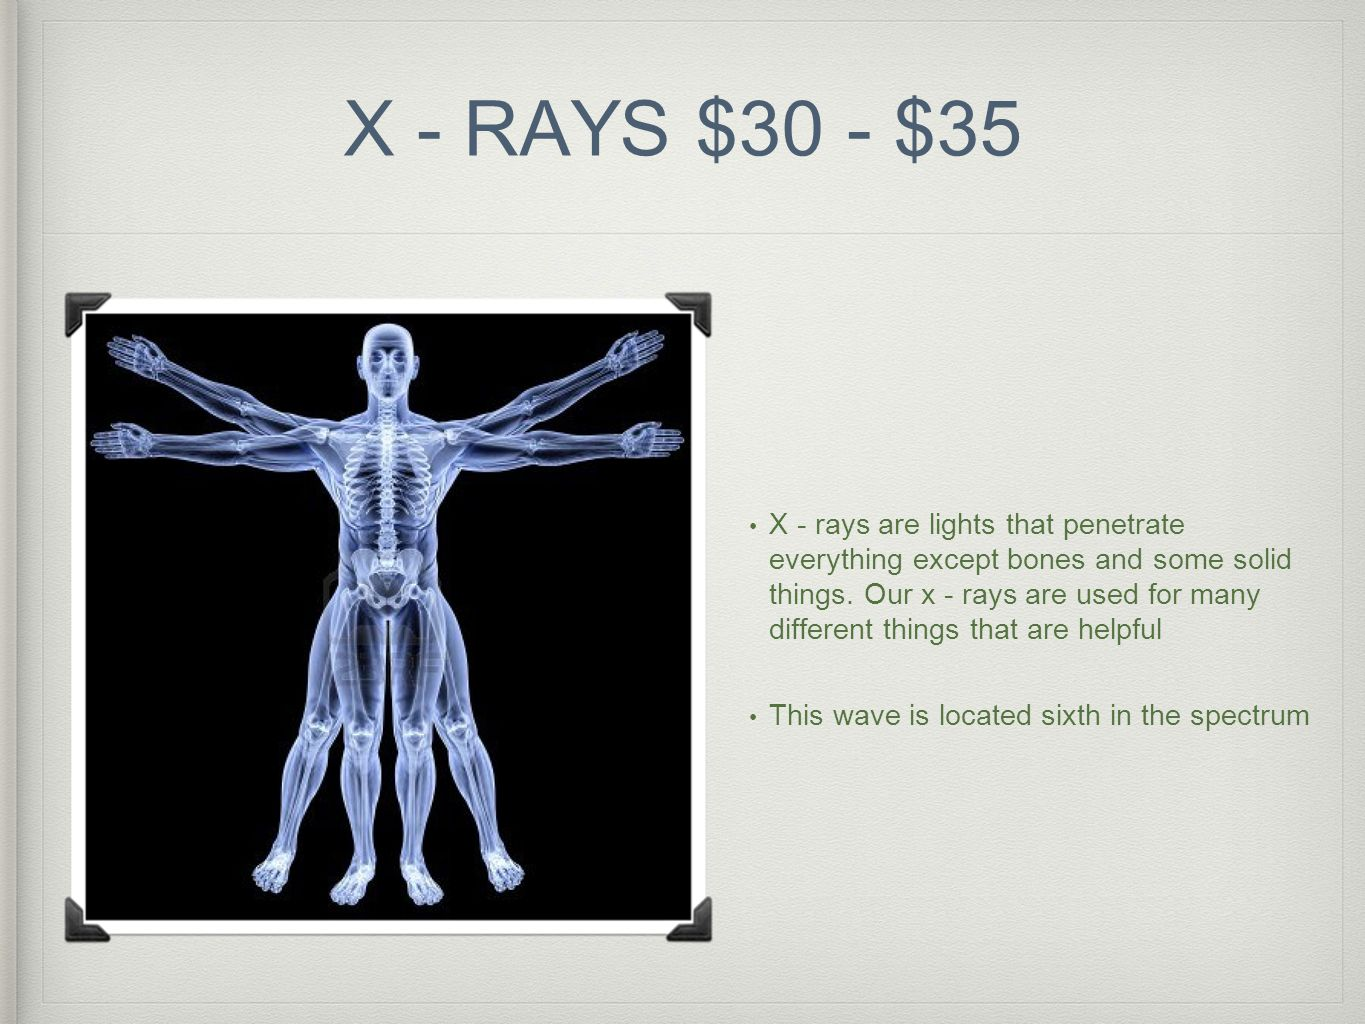 X - RAYS $30 - $35 X - rays are lights that penetrate everything except bones and some solid things. Our x - rays are used for many different things t